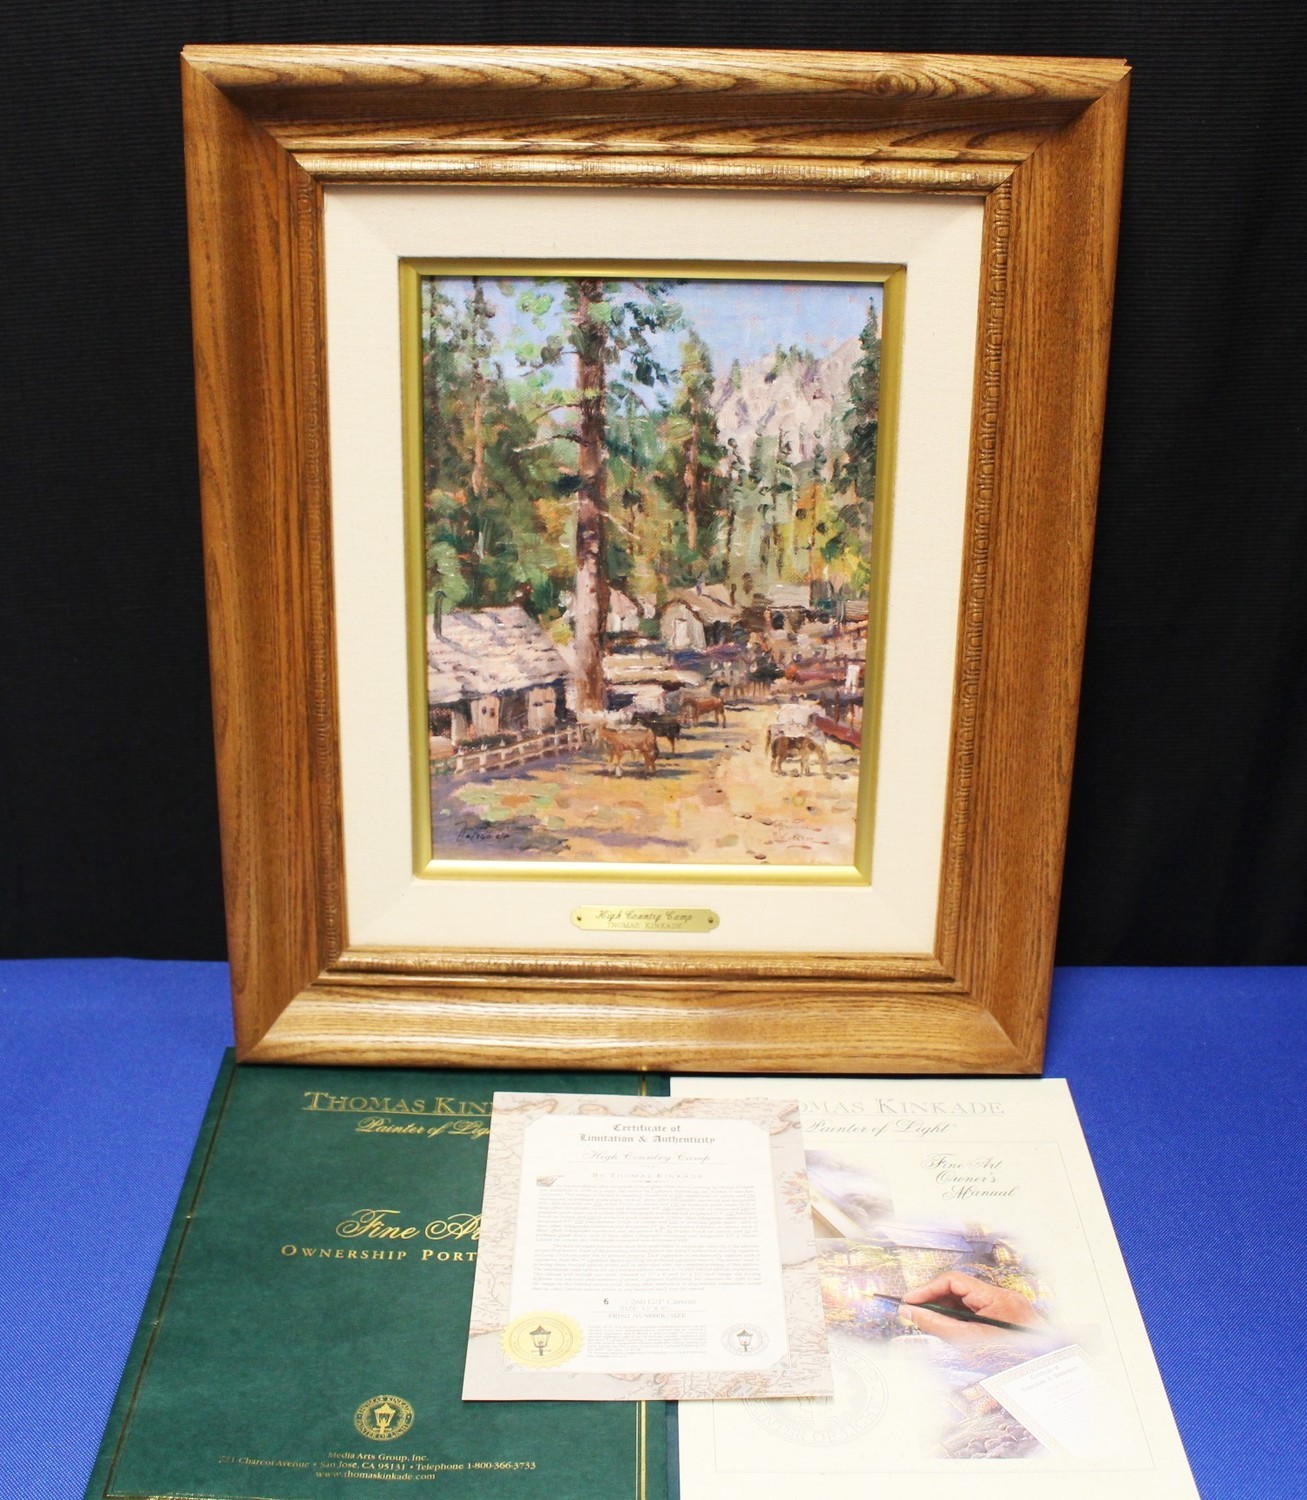 "Thomas Kinkade ""High Country Camp"" 12 x 9 Lithograph on Canvas G/P #6/260"